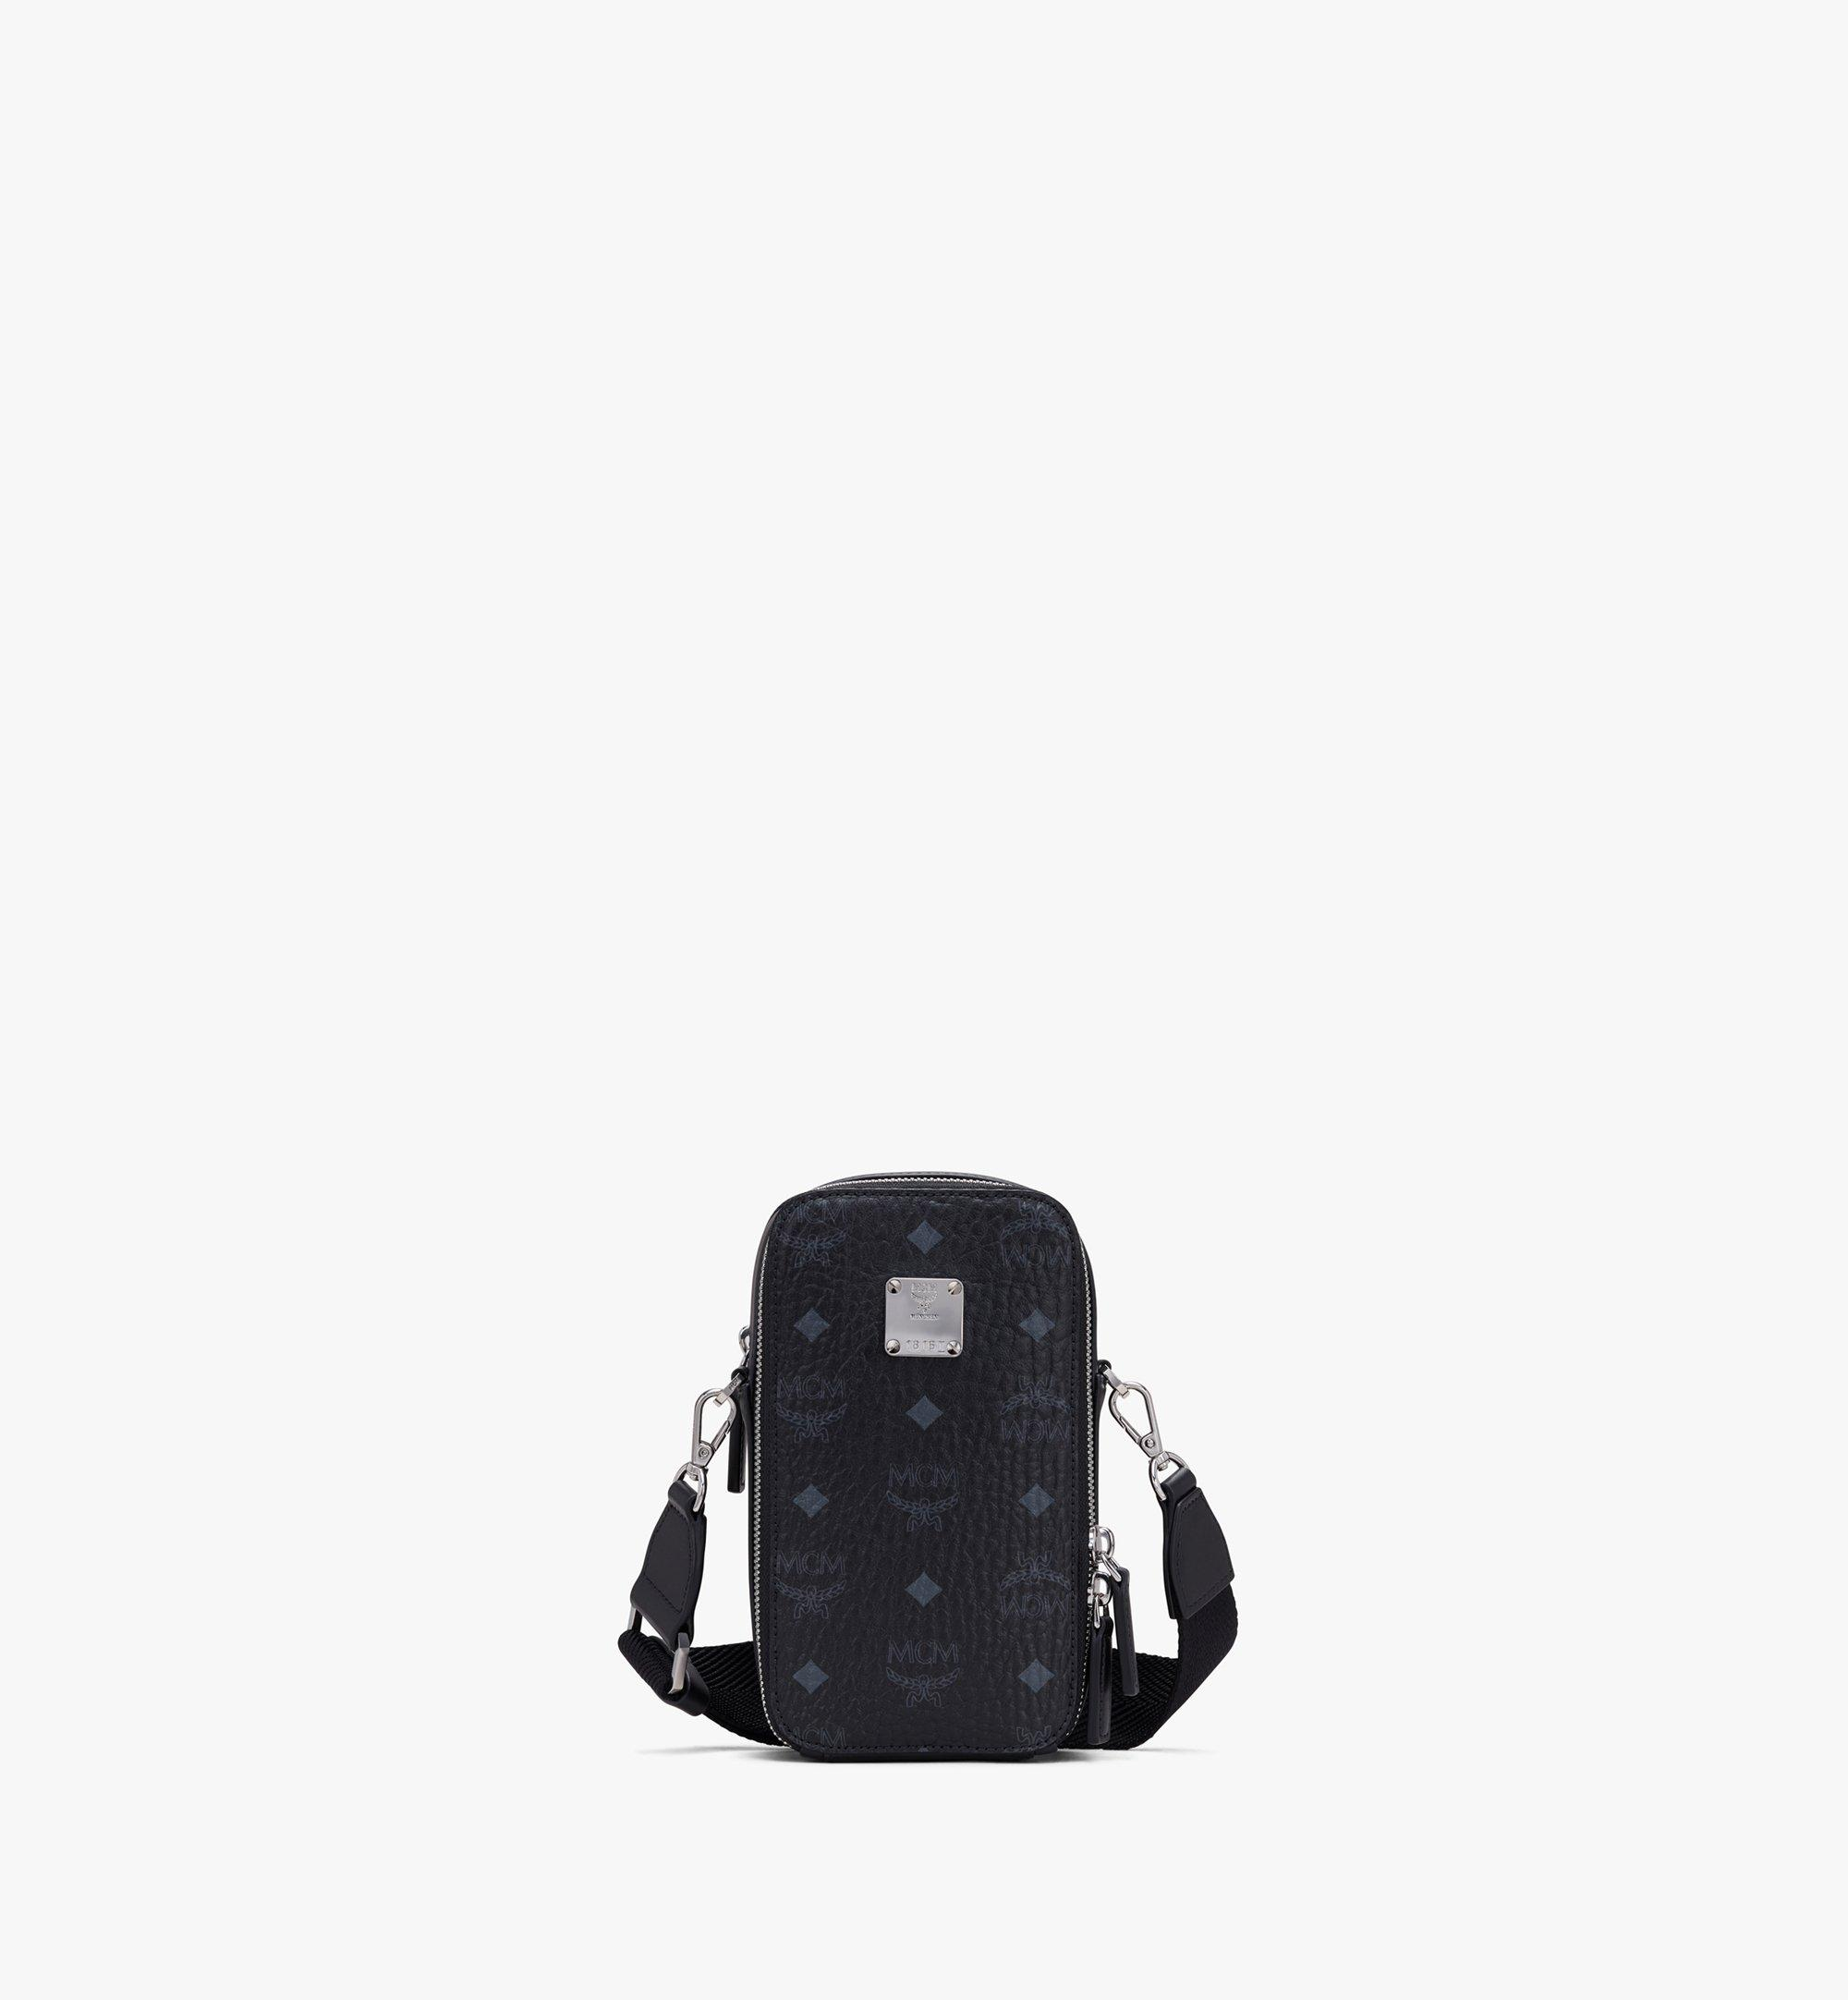 MCM N/S Camera Bag in Visetos Black MWRASVI04BK001 Alternate View 1